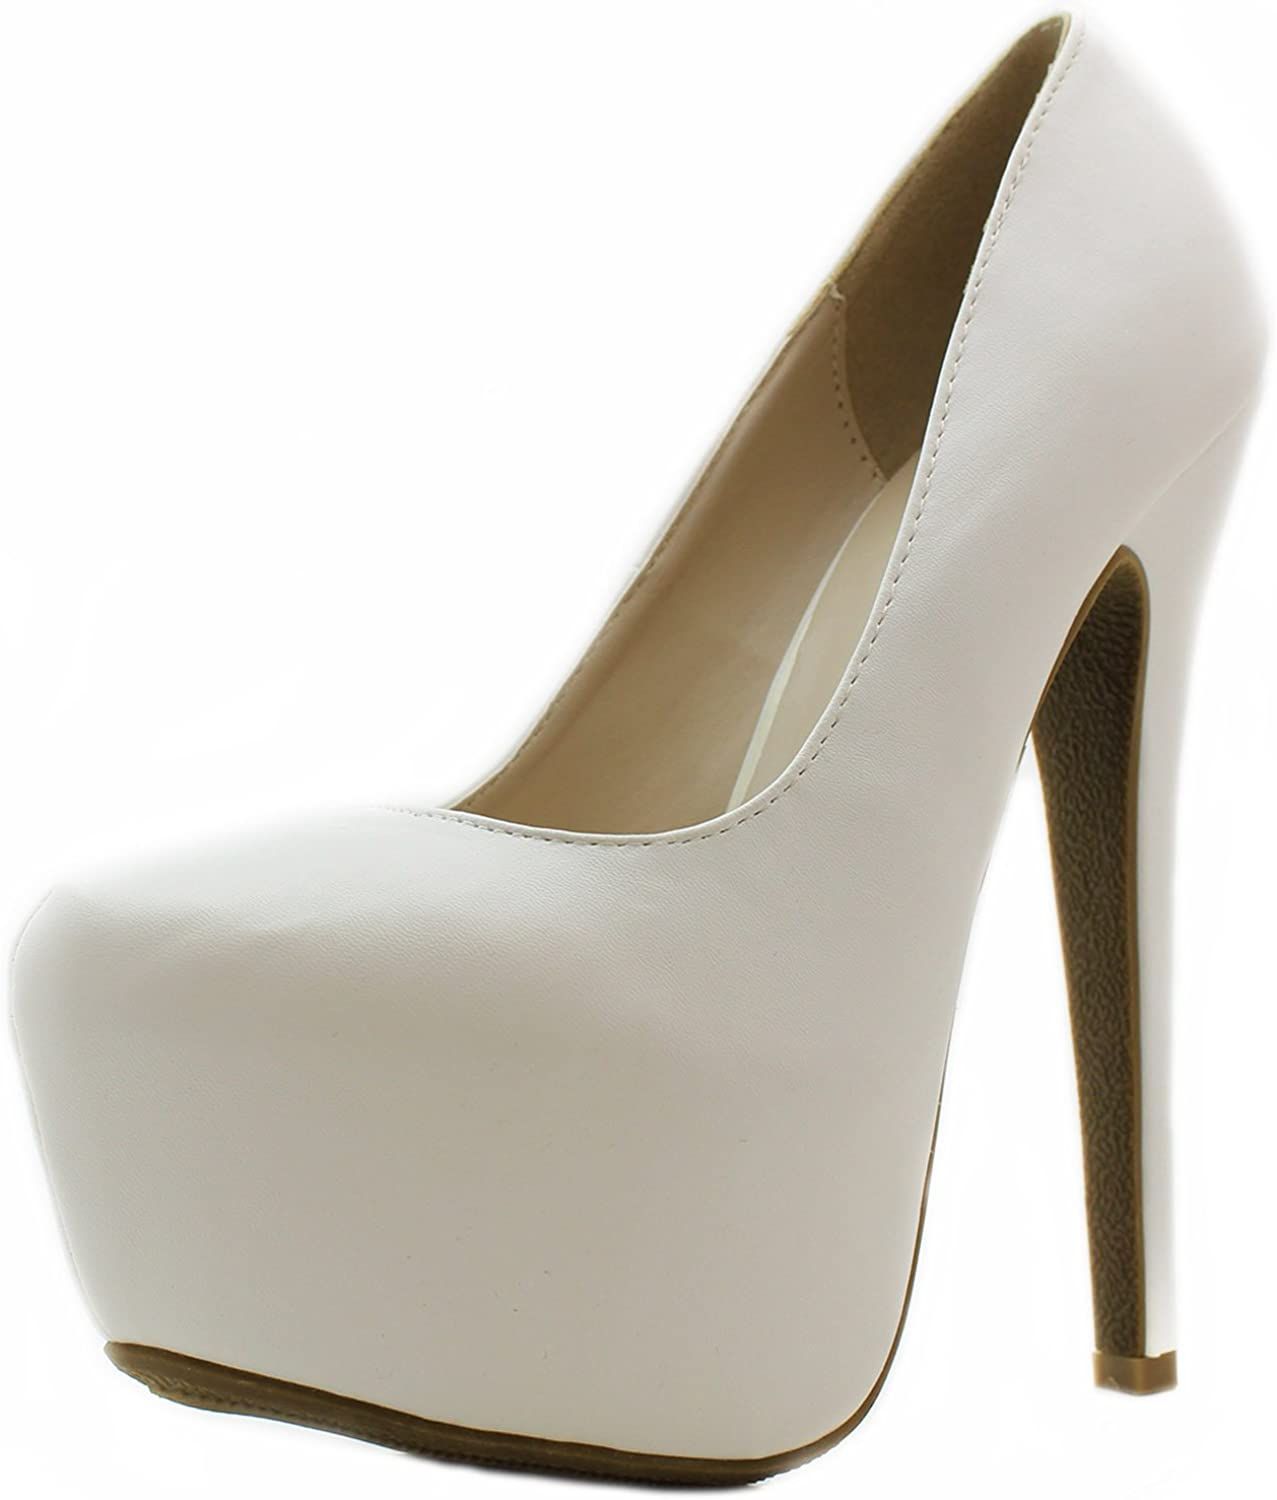 Details about  /Womens Stiletto Super High Heels Lace Up Patent Leather Round Toe Platform Shoes